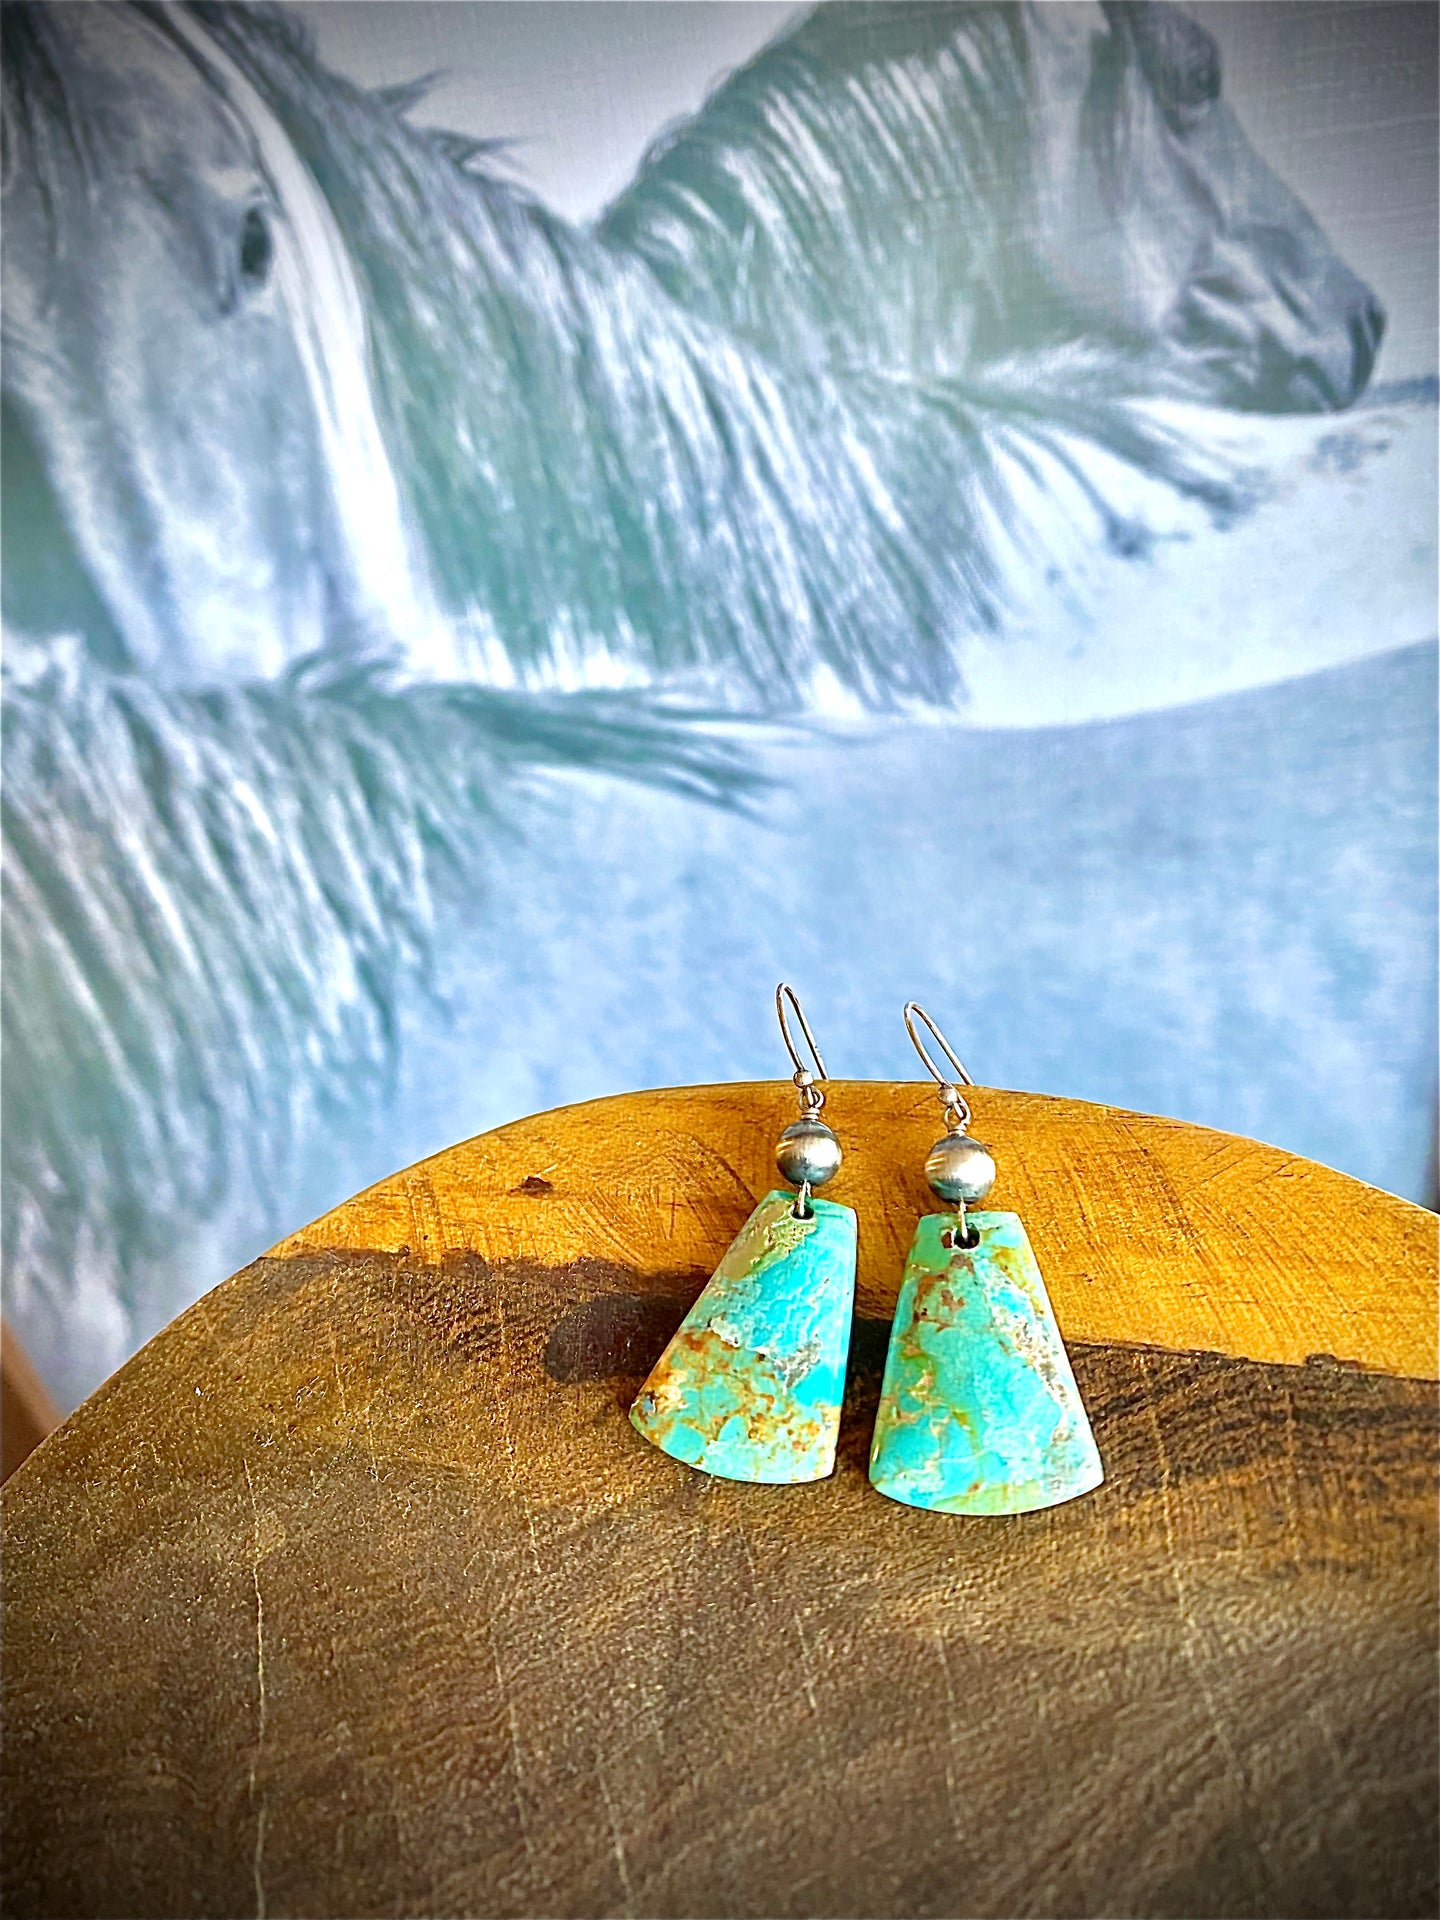 The Shanna Turquoise Slab Earrings